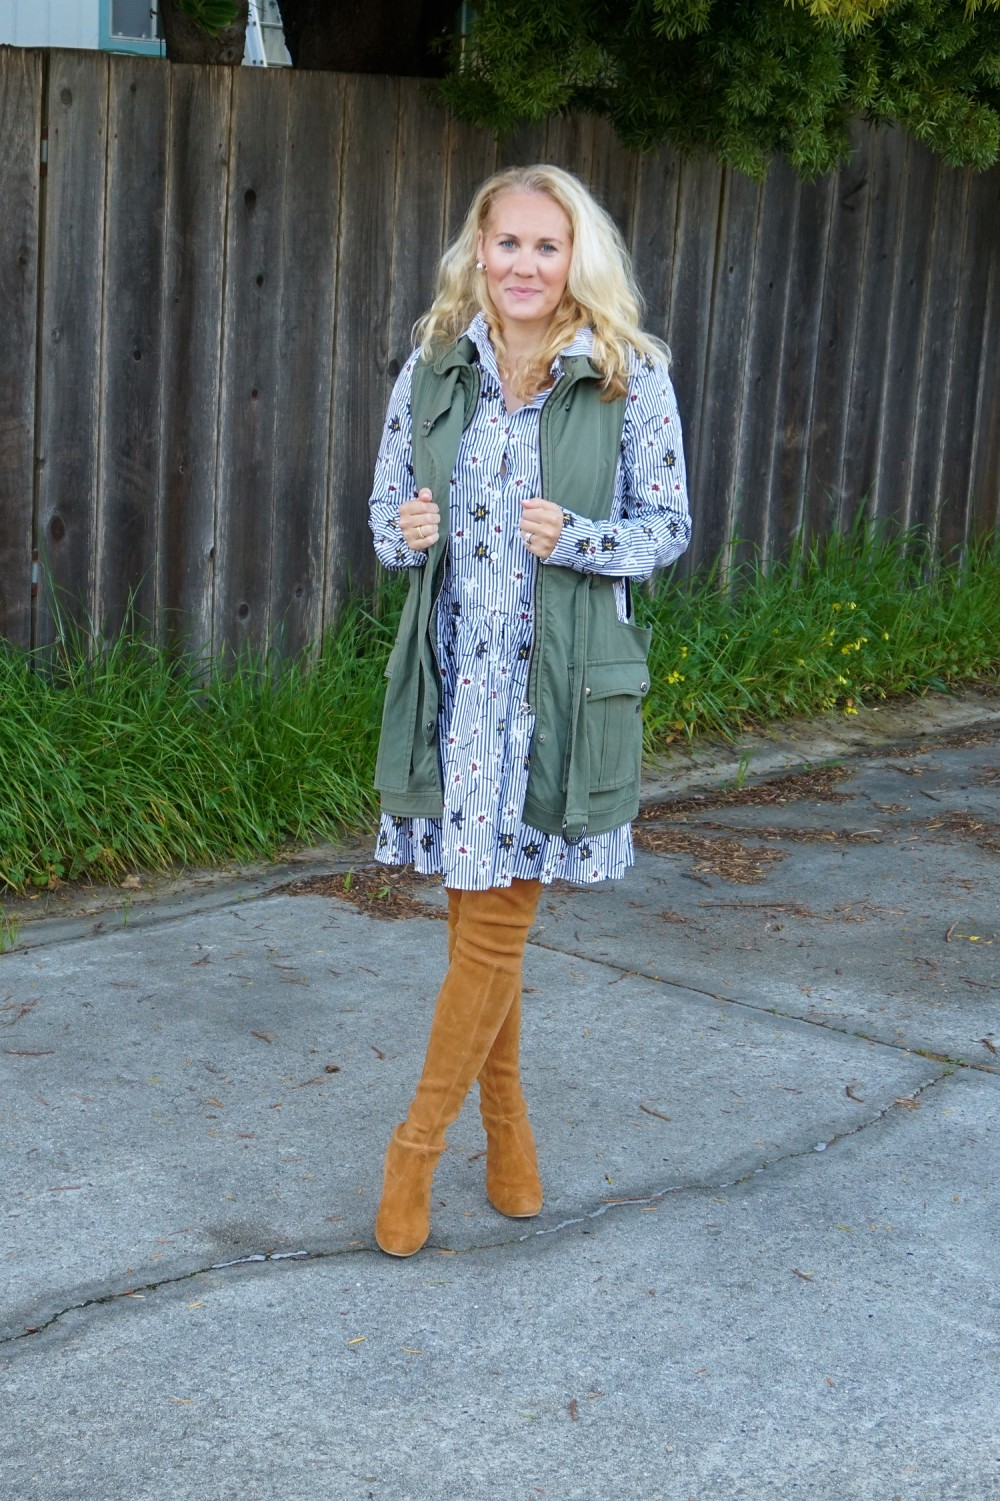 Opening Ceremony Pinstripe and Floral Shirtdress-Spring Style-Outfit Inspiration-Bay Area Fashion Blogger-Stuart Weitzman-Highland Boots-Have Need Want 5